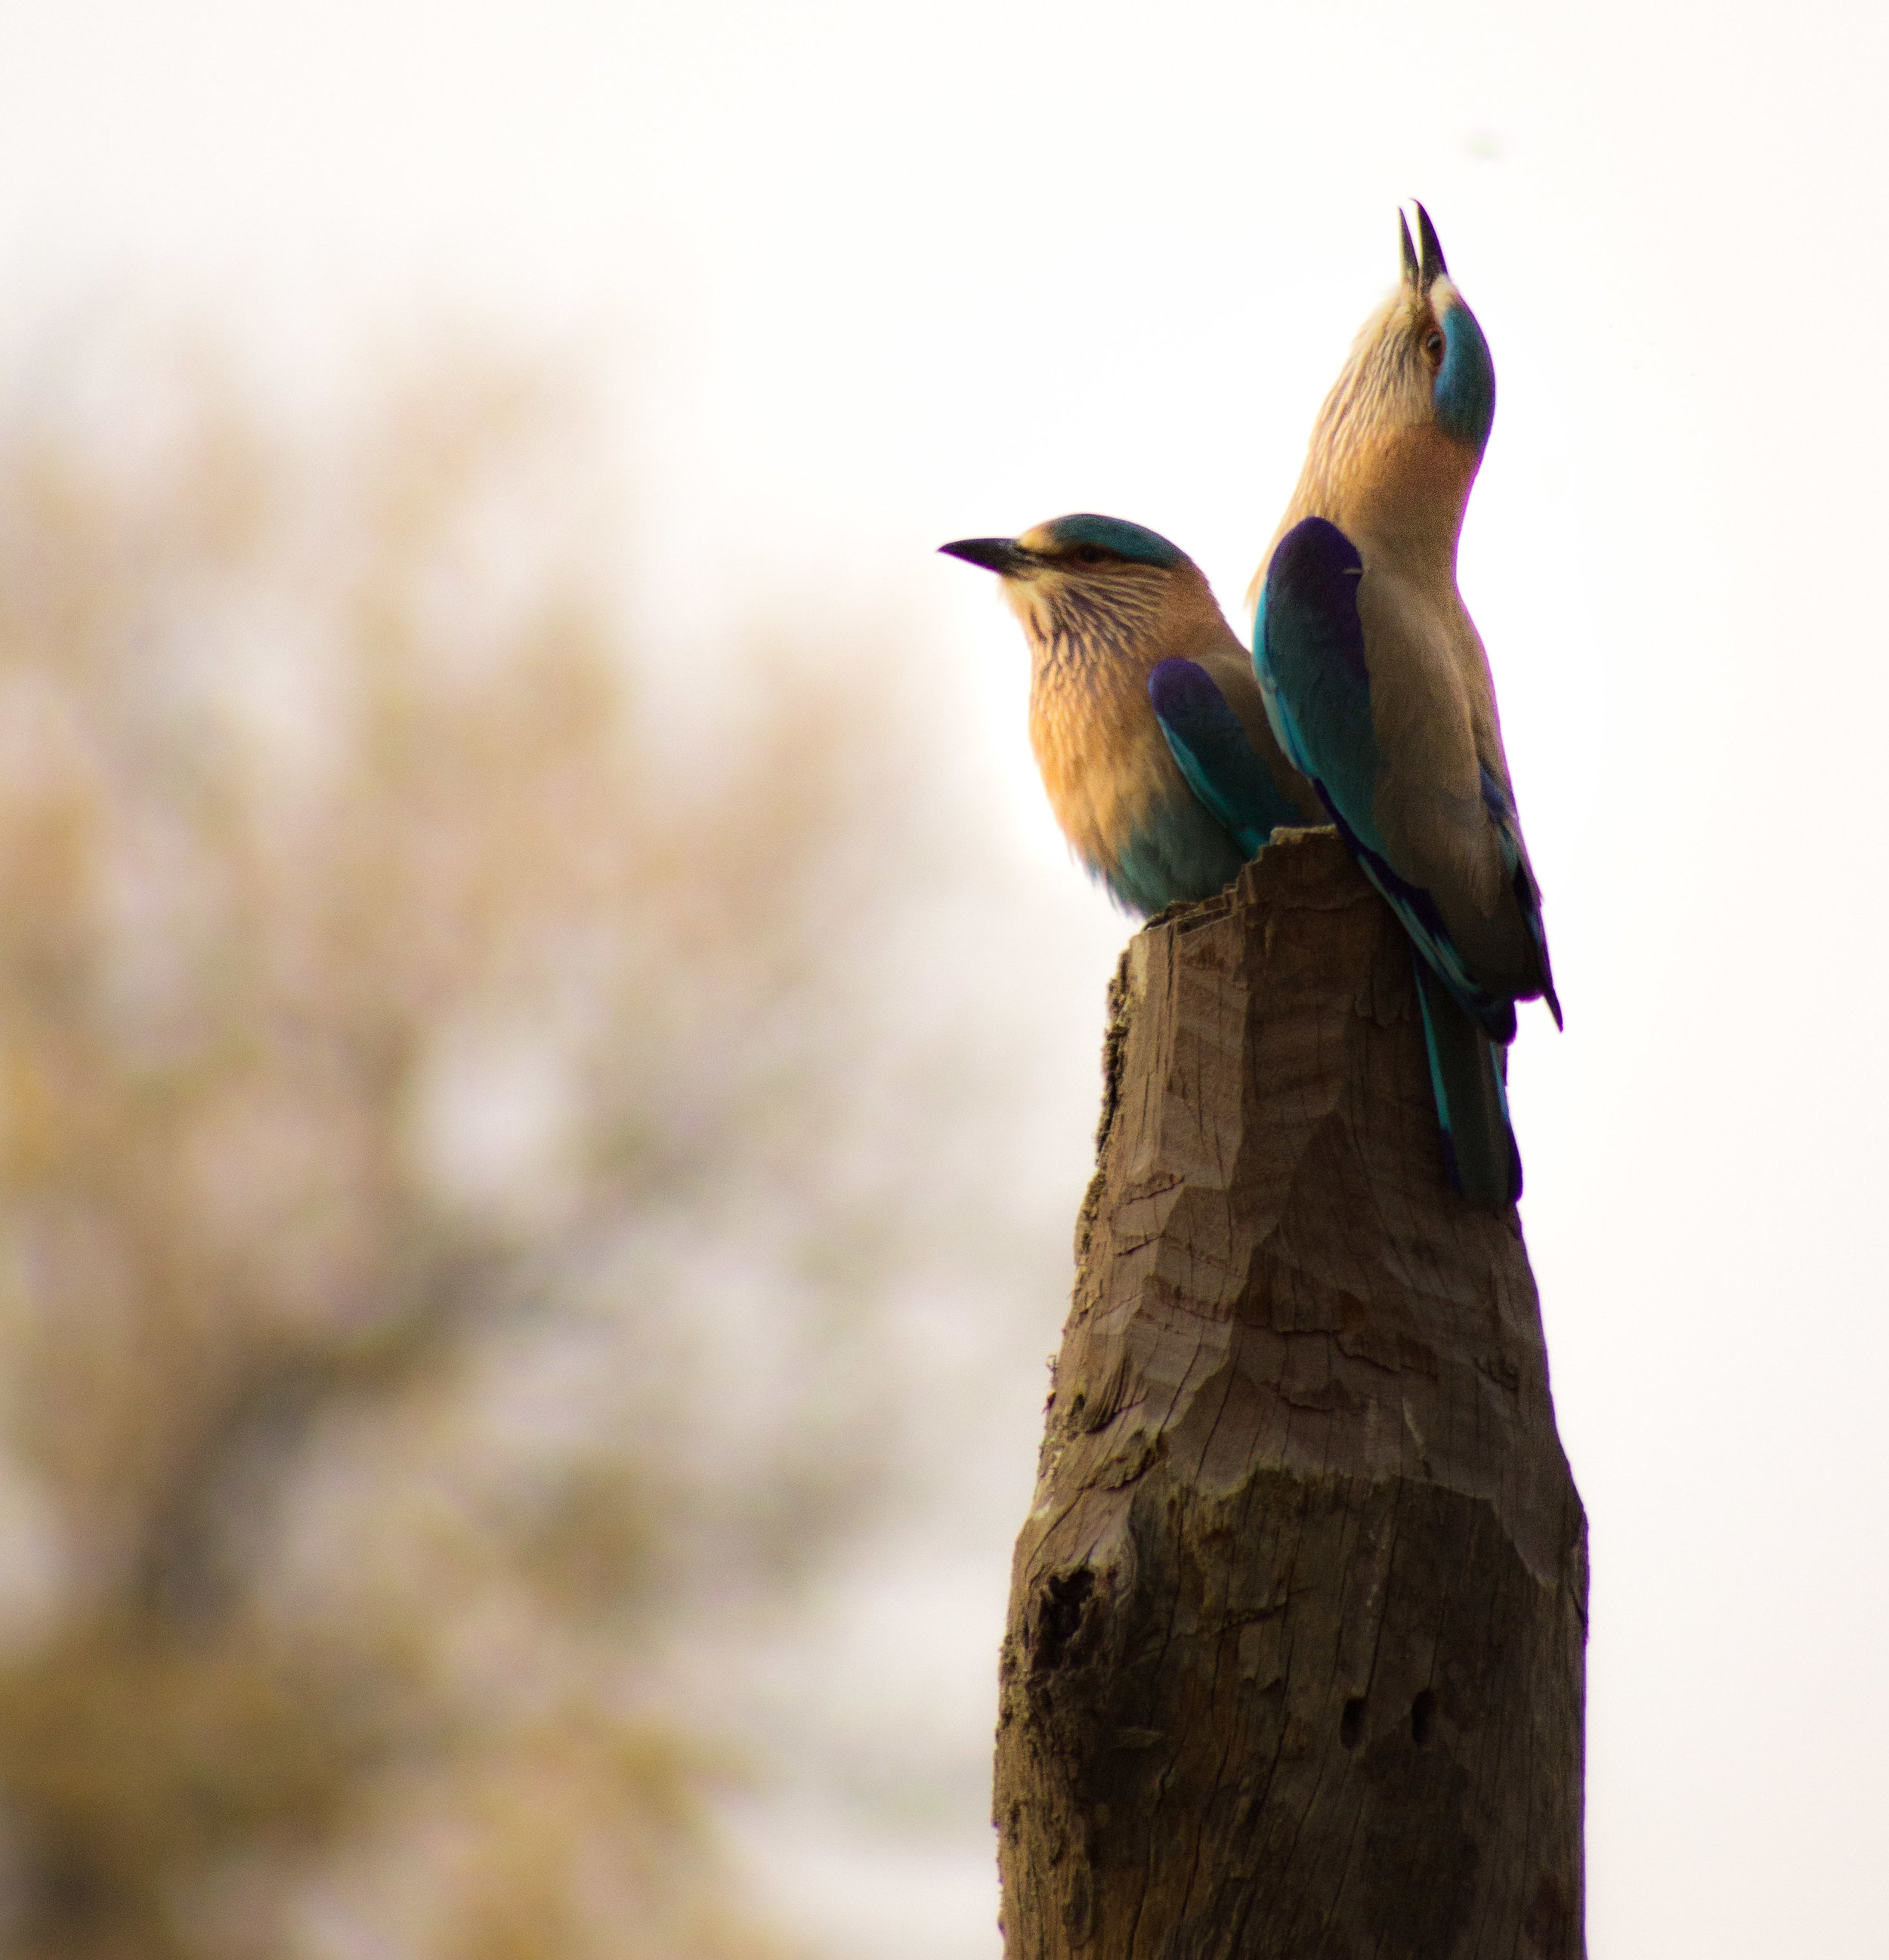 India Kanha Indian Roller Pair (1 of 1).jpg